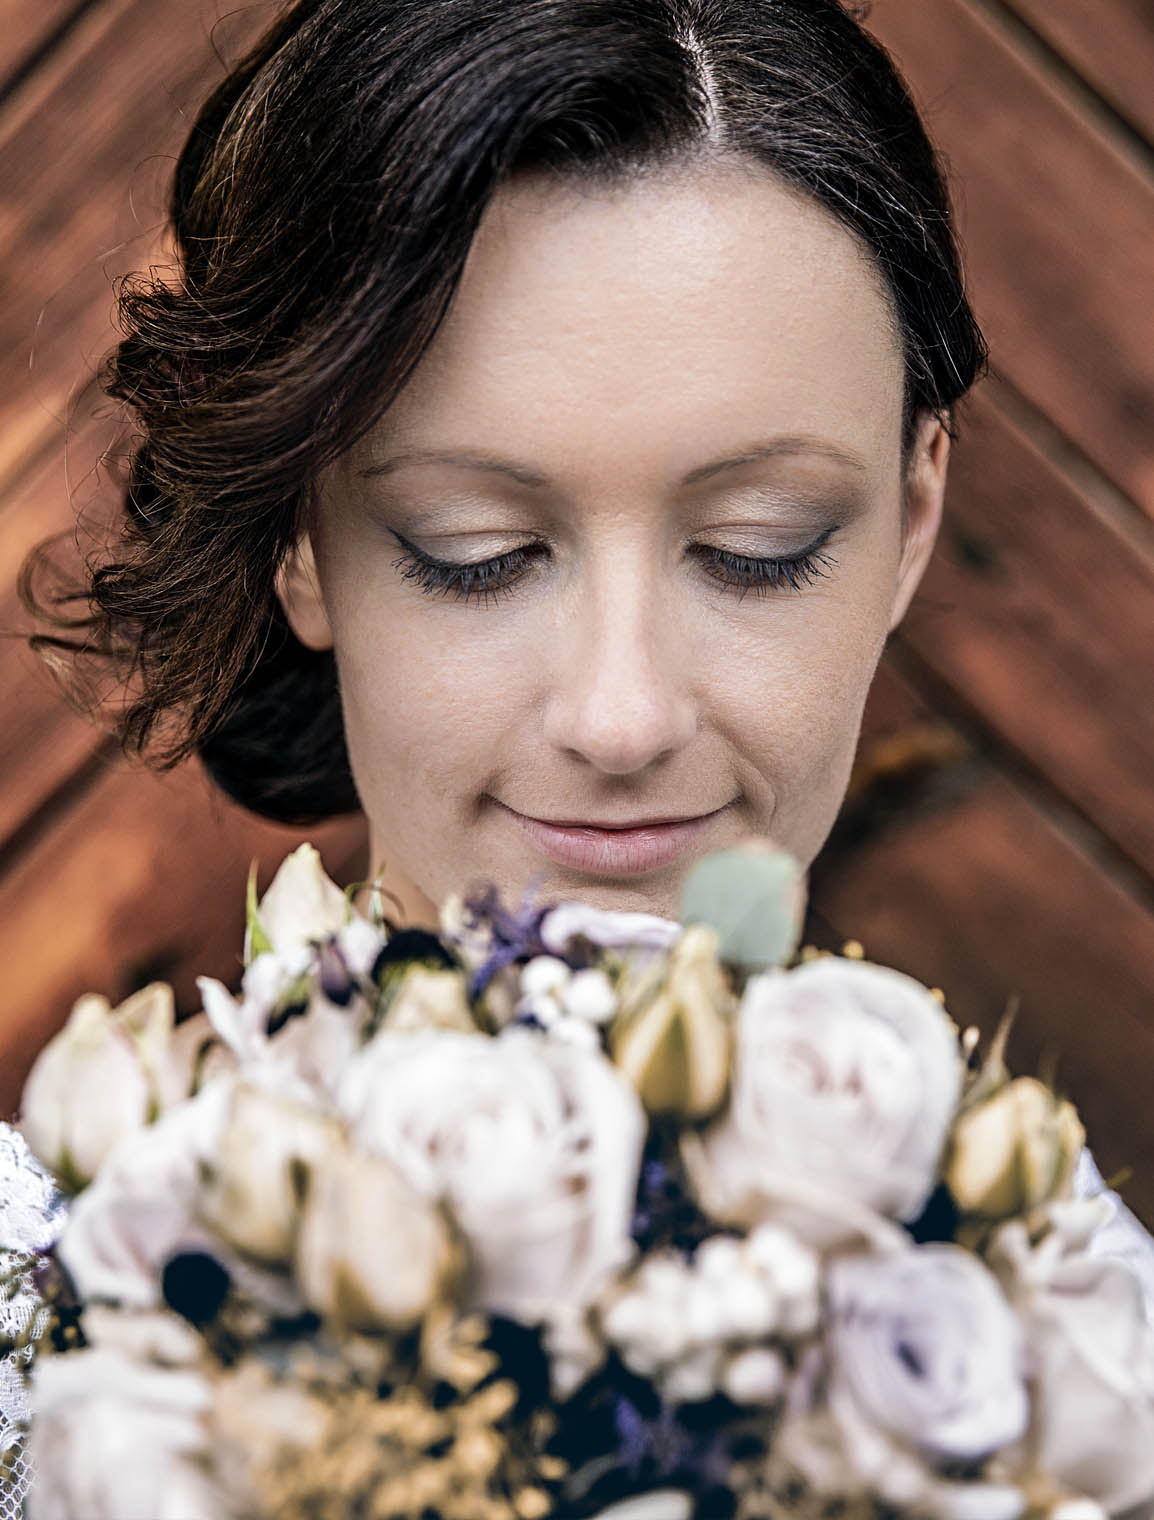 wedding_thomas_simone_bride_face_flowers_smile